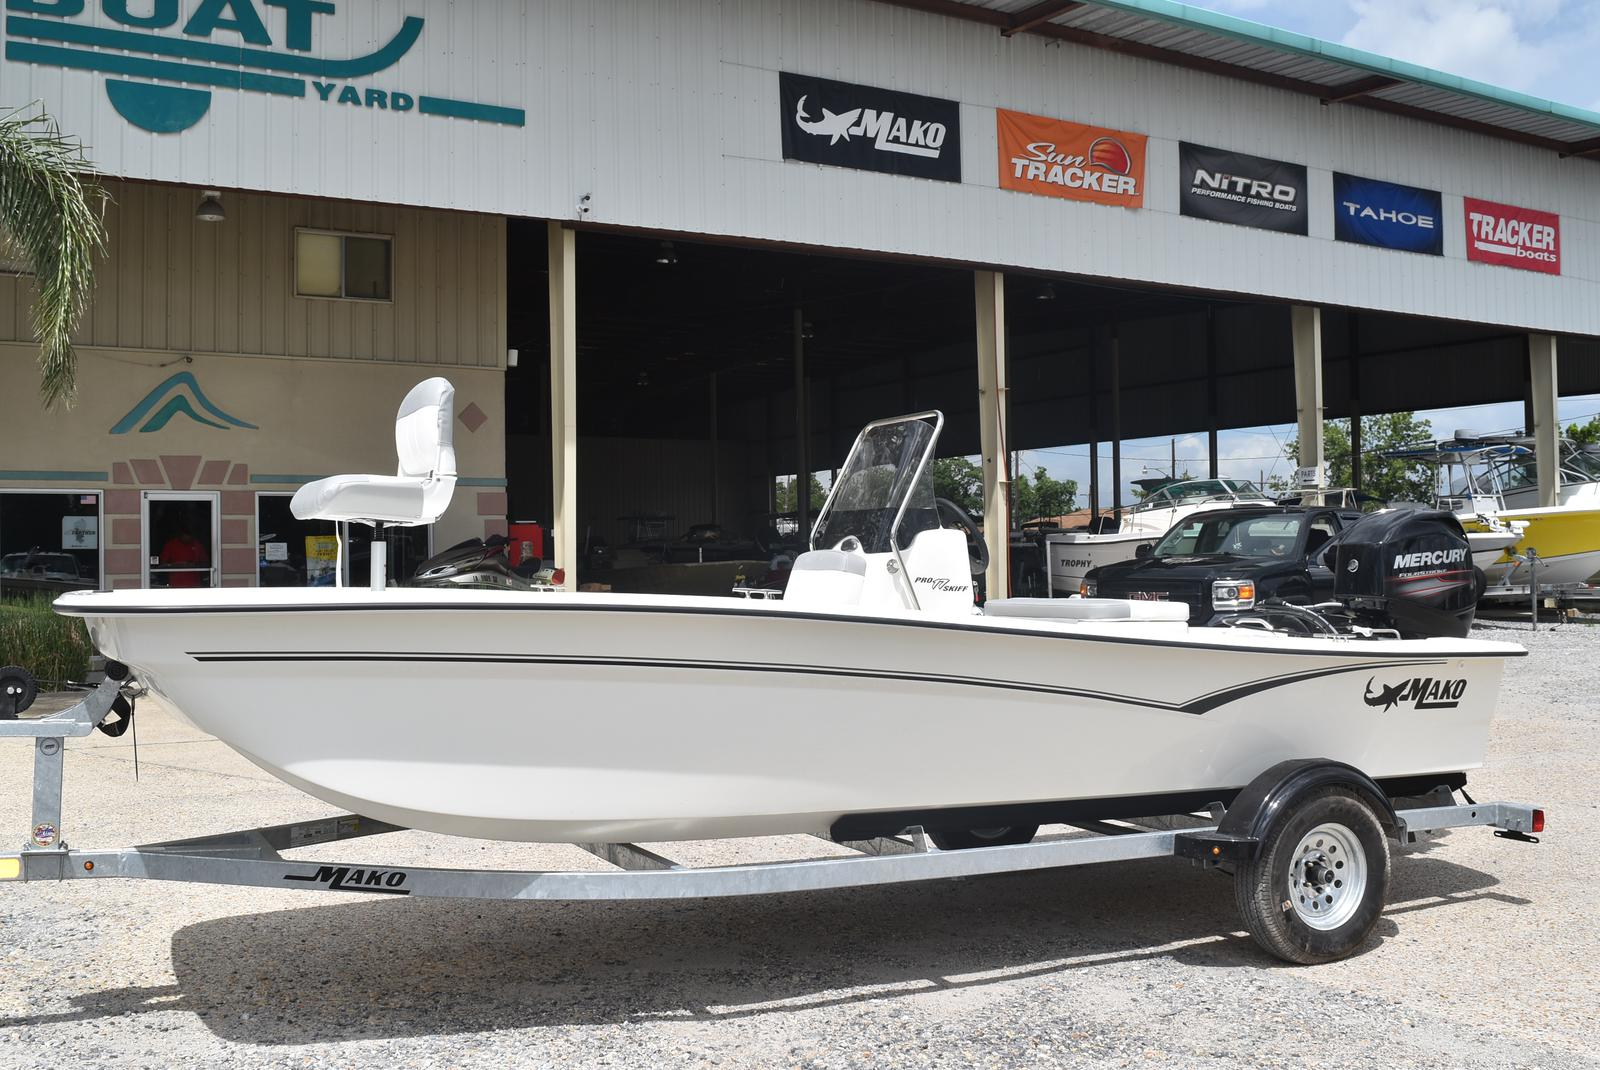 2020 Mako boat for sale, model of the boat is Pro Skiff 17, 75 ELPT & Image # 97 of 702